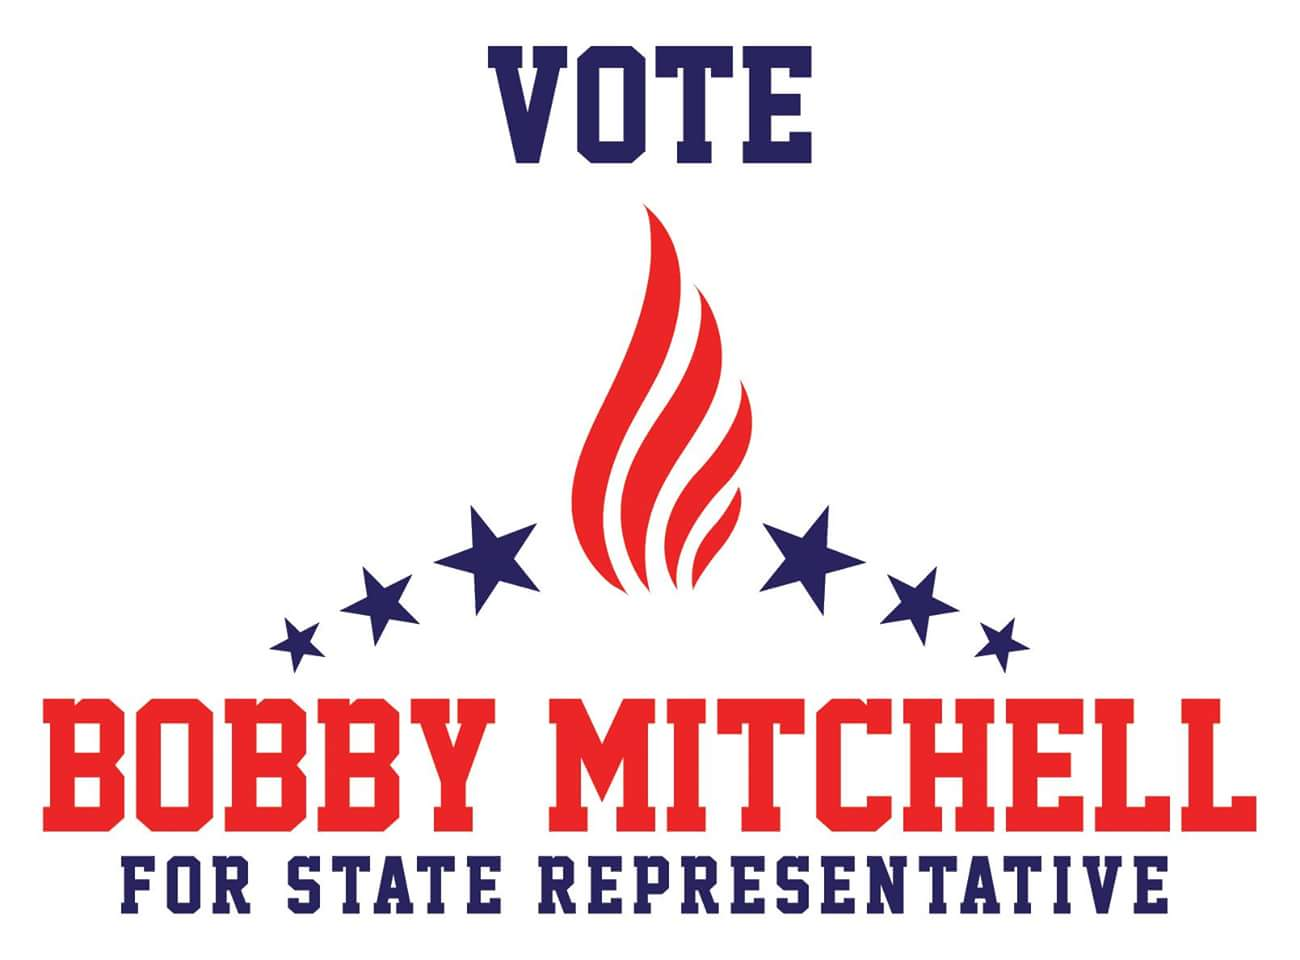 Elect Bobby Mitchell for State Representative